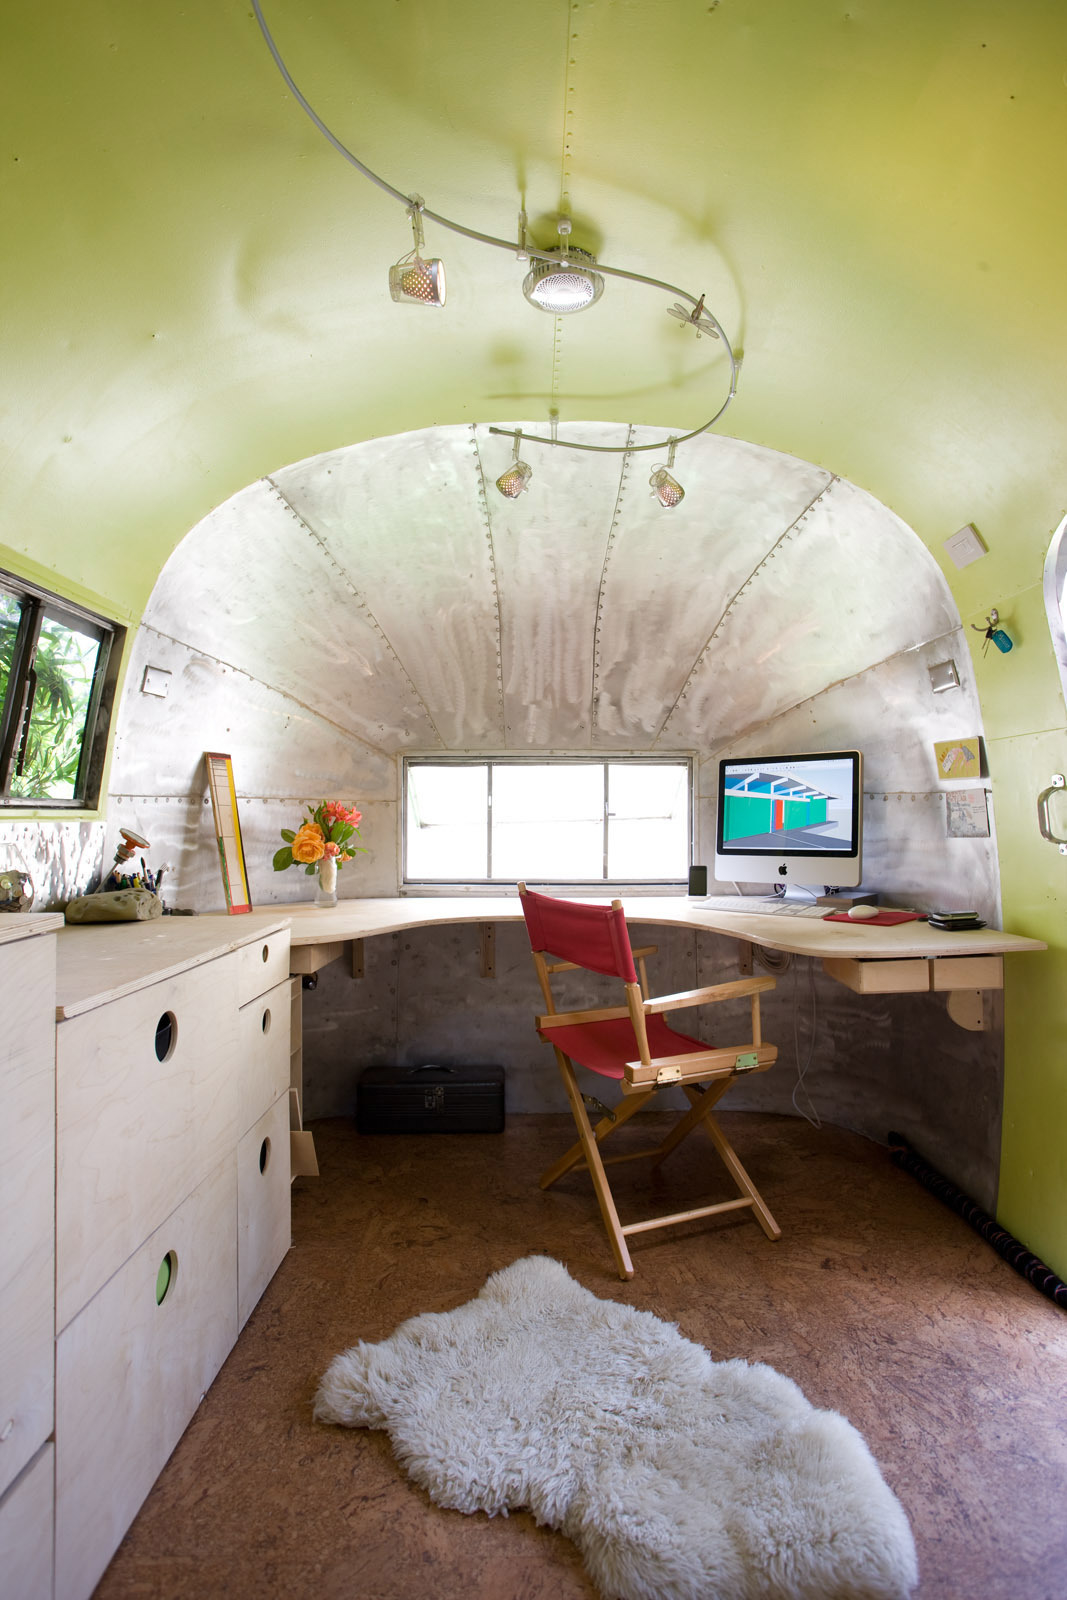 The color choice was well-thought for such a tiny space. Image Source: Dwell